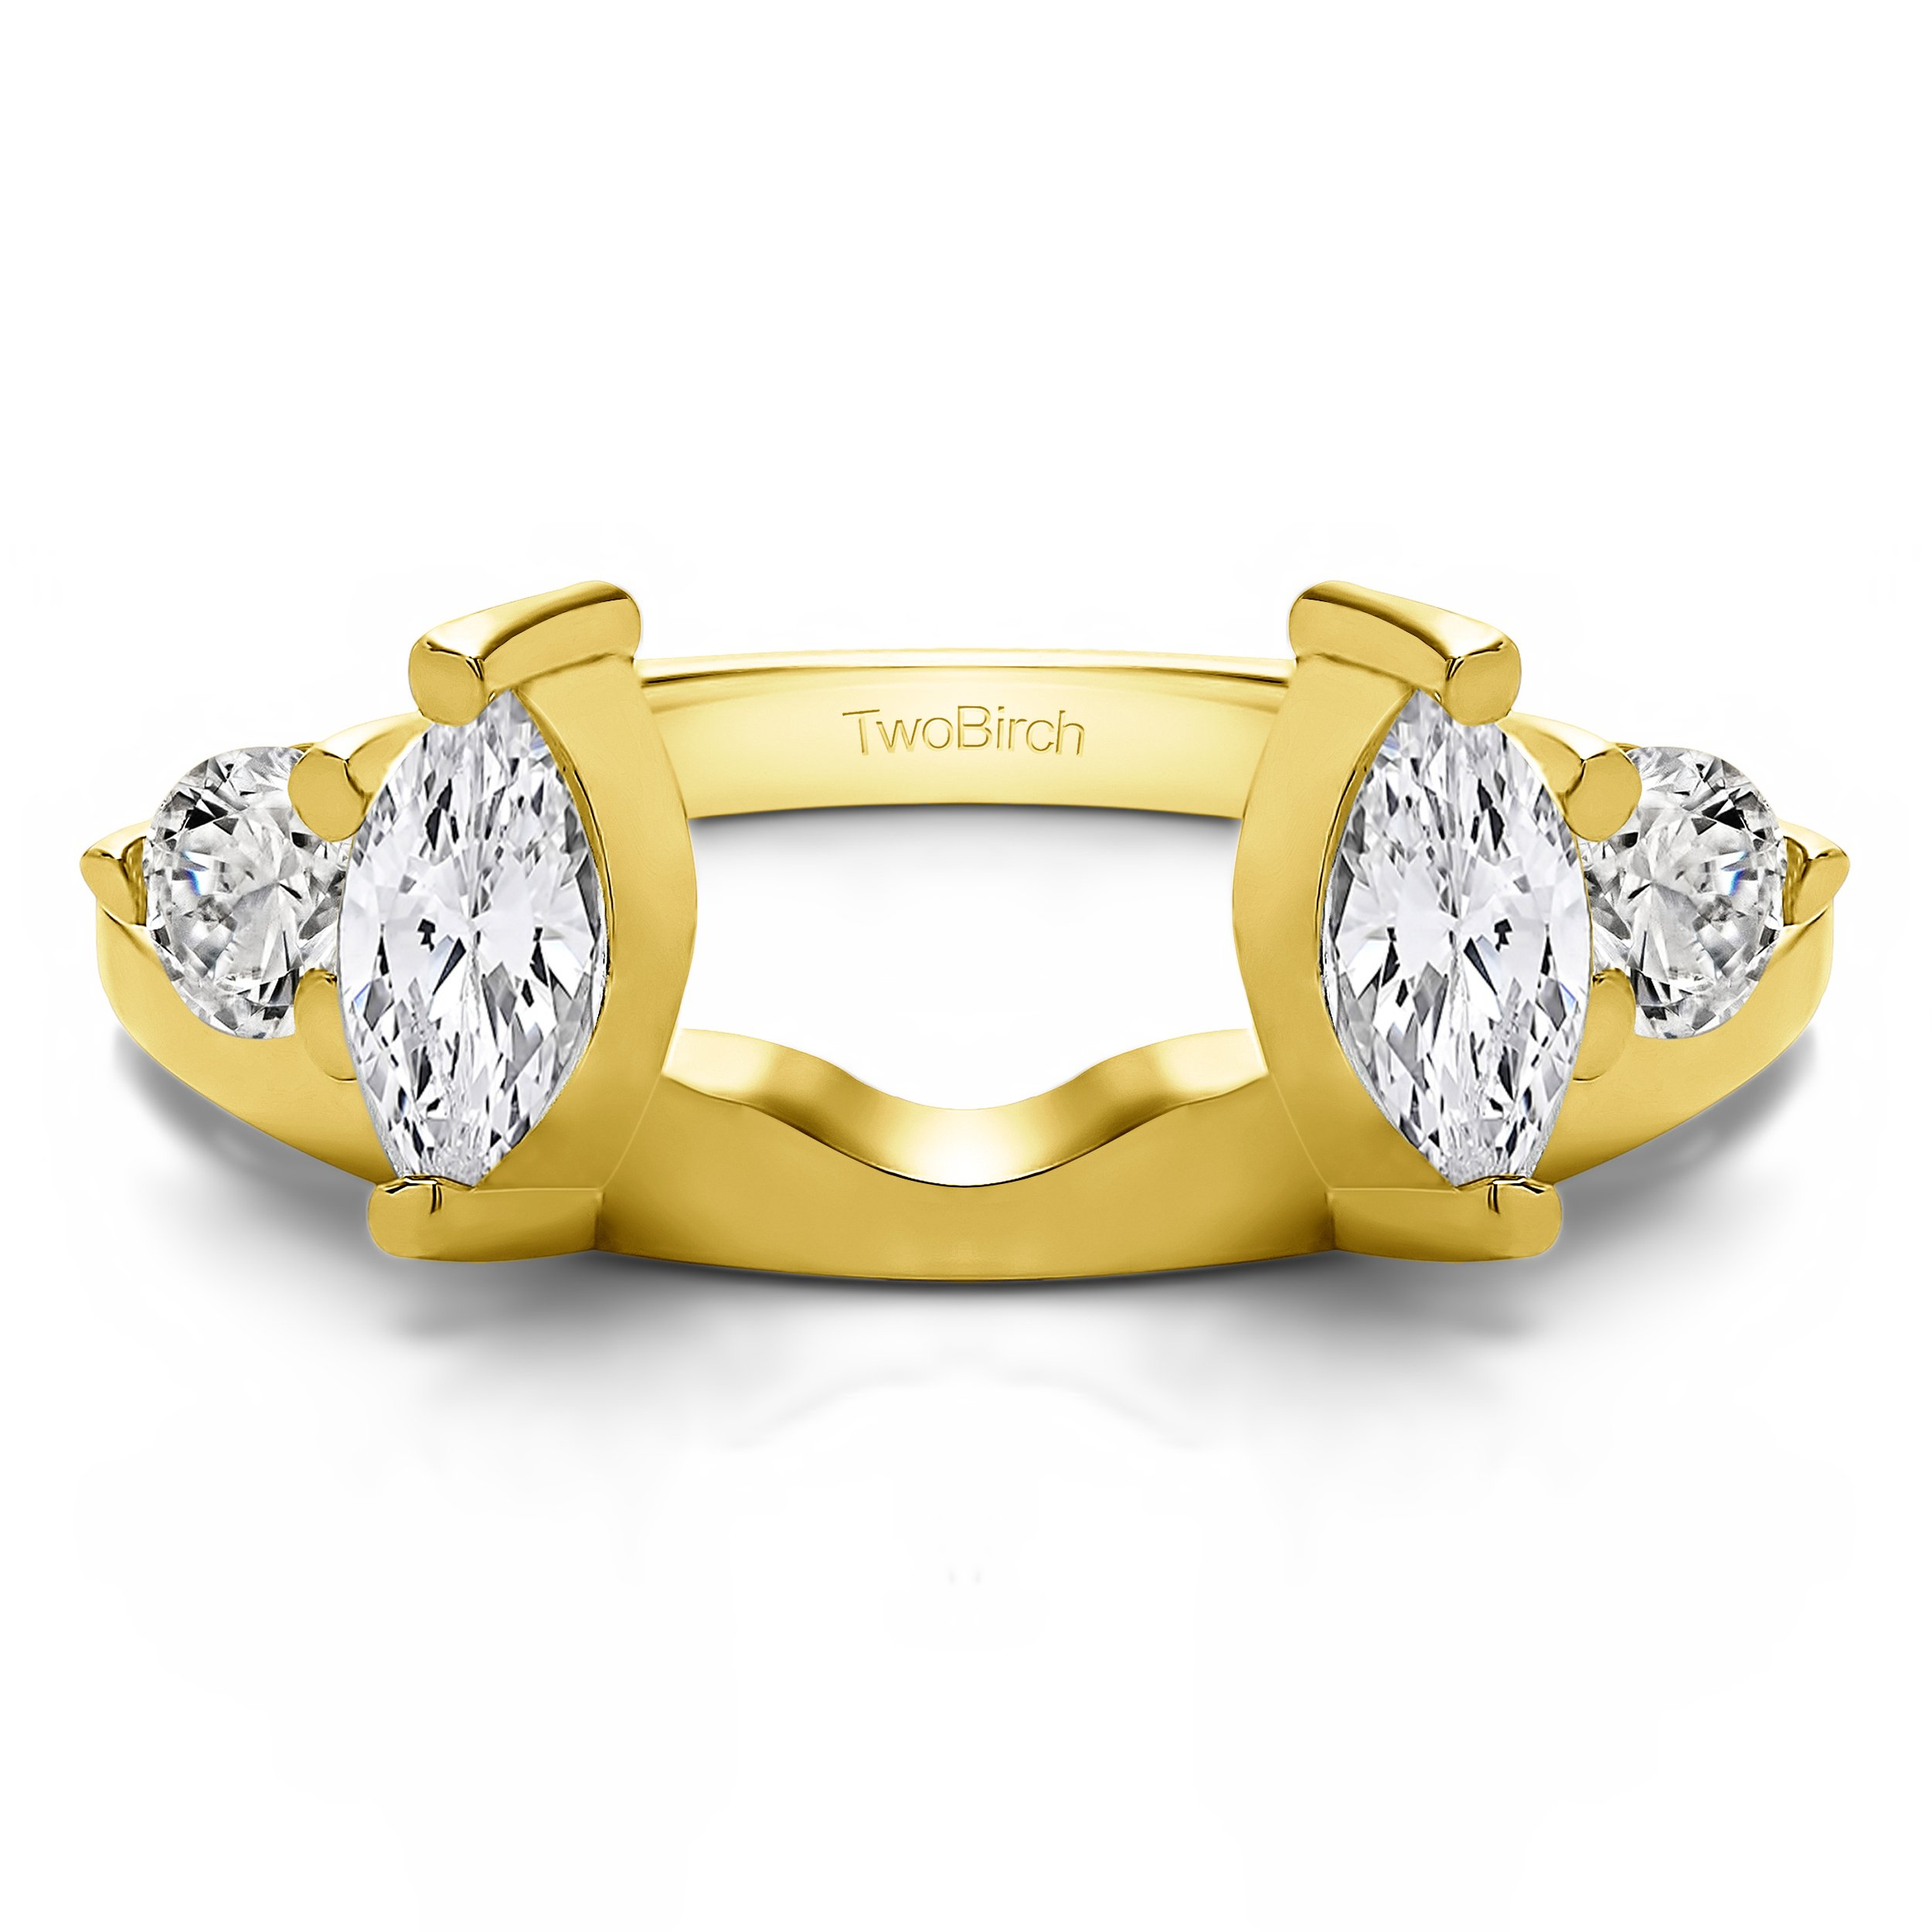 Solitaire Ring Wrap Enhancer set in Yellow Gold set with CZ(1Ct) Size 3 To 15 in 1/4 Size Interval